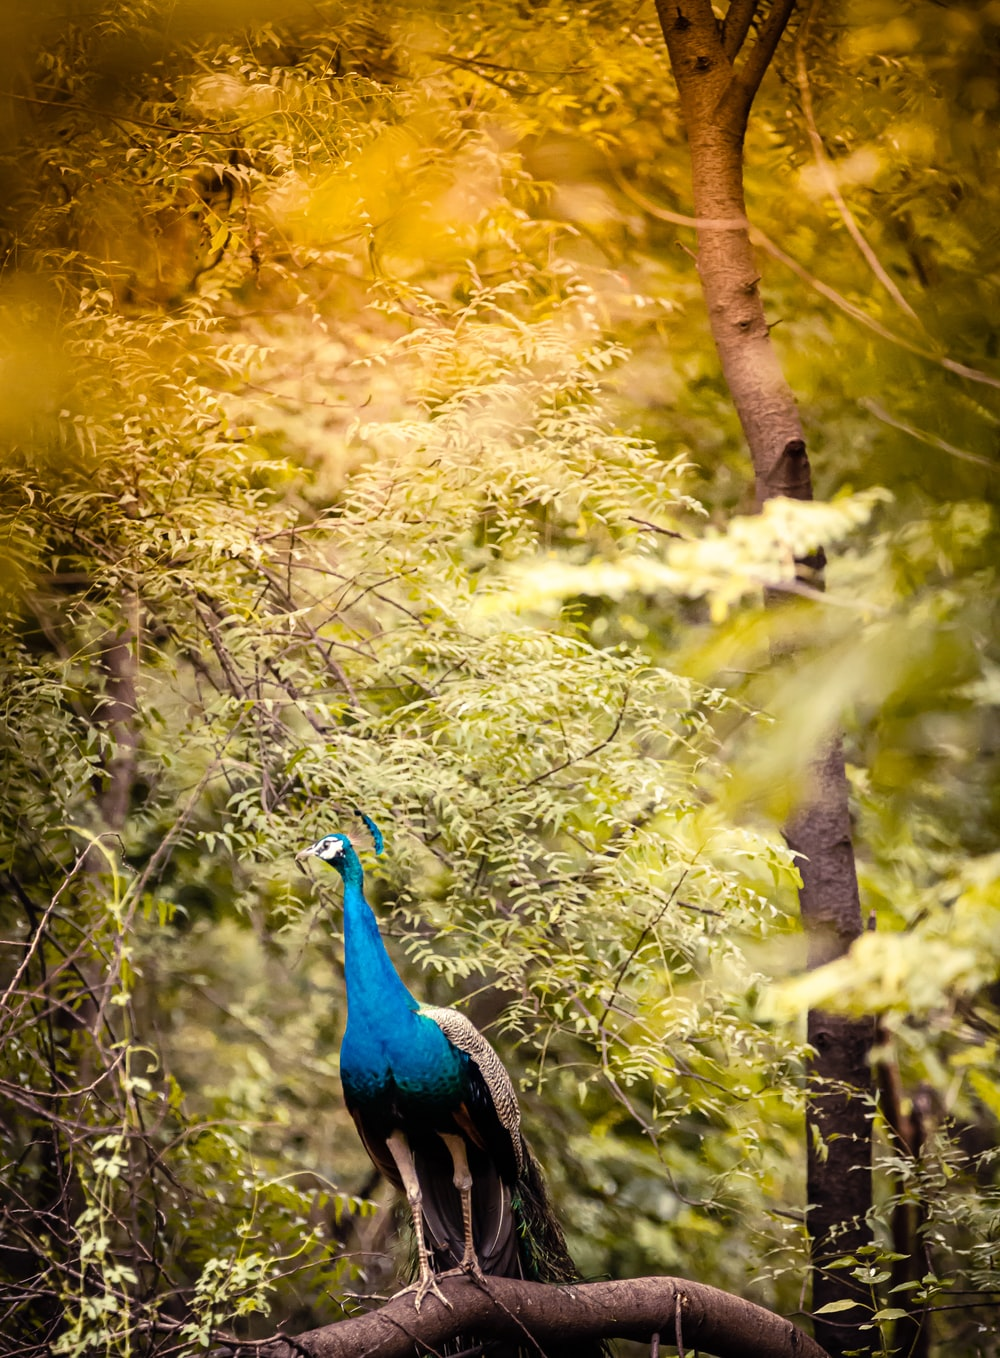 blue peacock on green tree branch during daytime